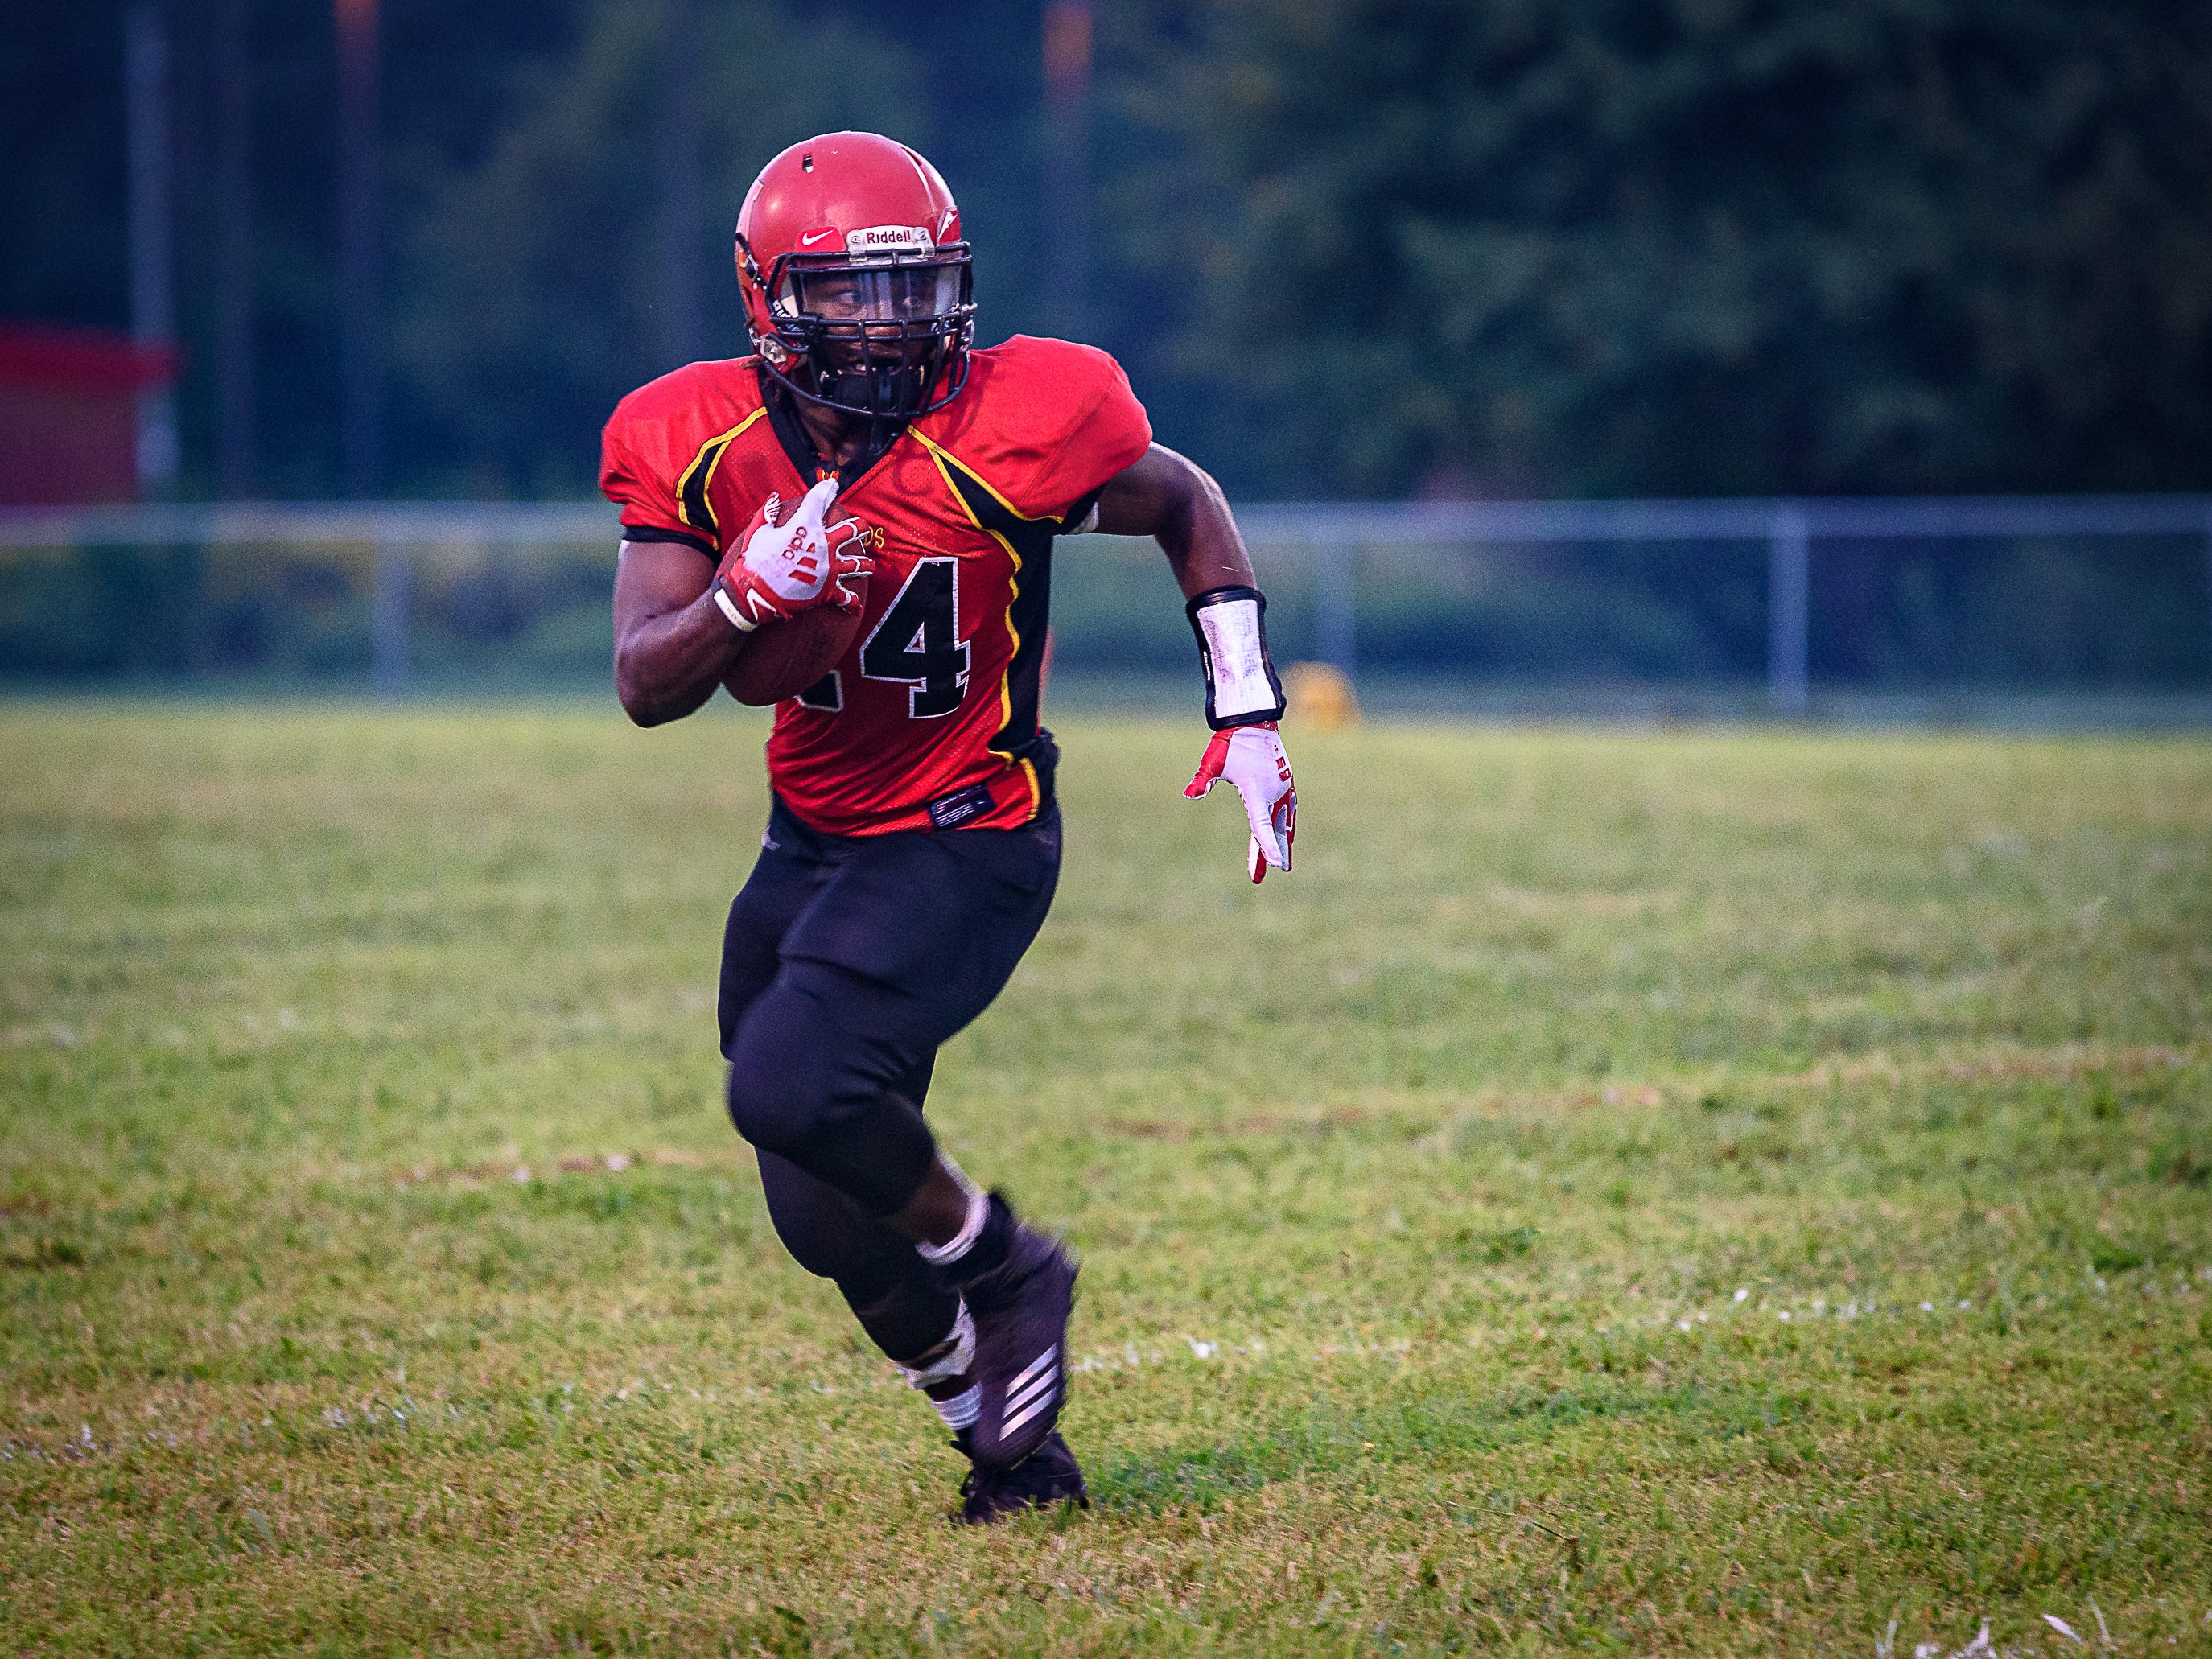 Arcadia's Bryden Bibbins catches a pass and heads across the field during the game against Stephen Decatur.